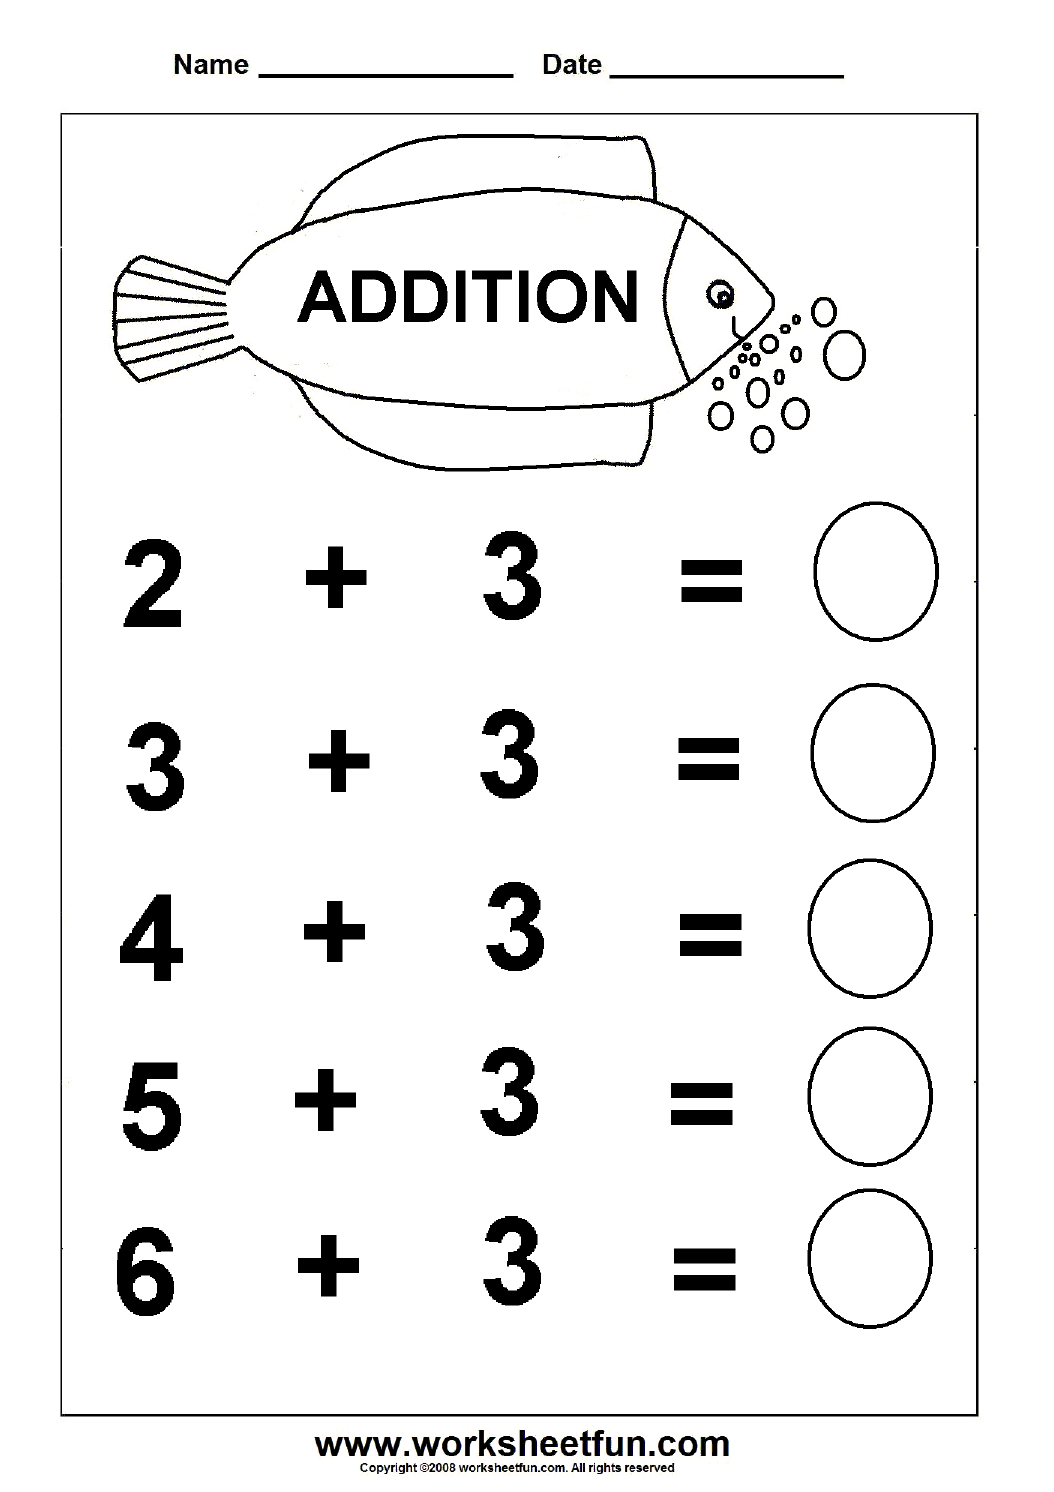 Beginner Addition – 6 Kindergarten Addition Worksheets / Free | Free Printable Pre K Math Worksheets